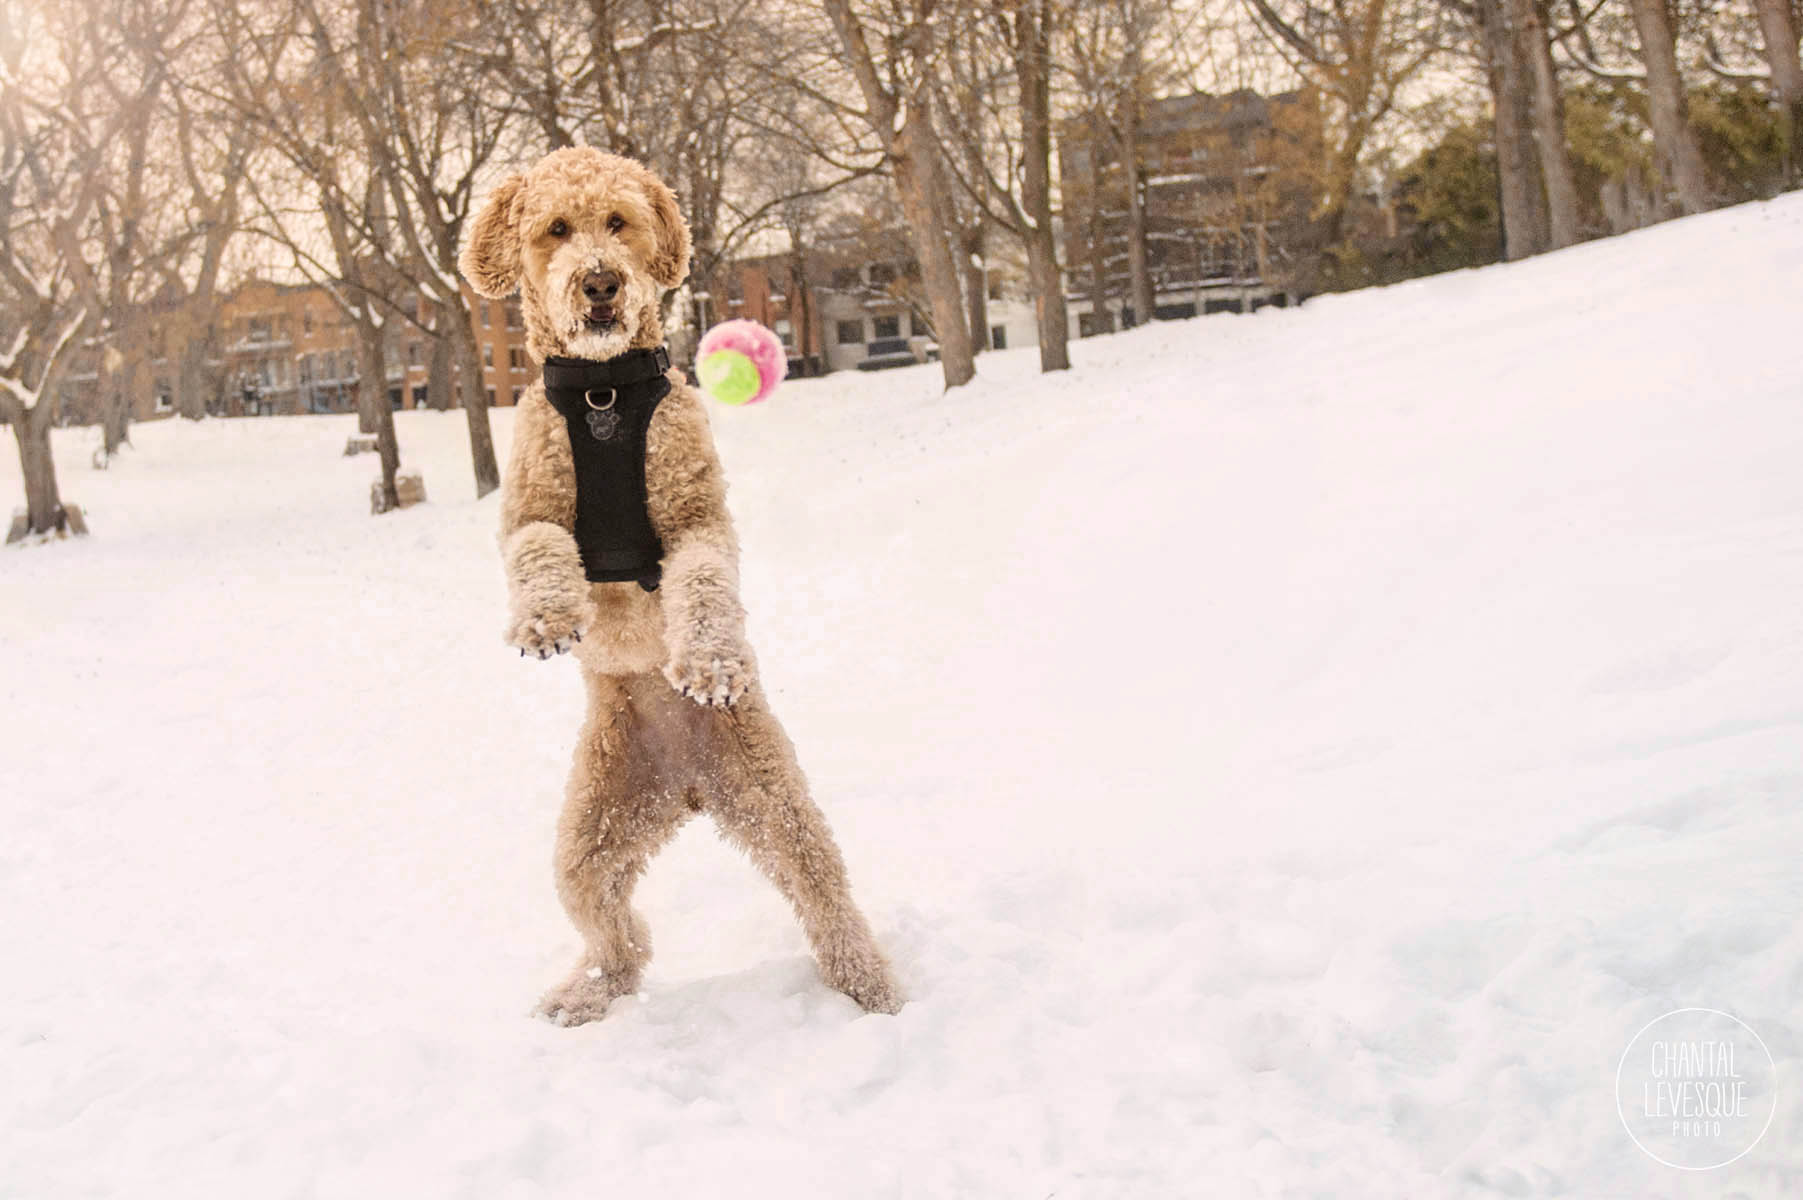 doodle-playing-snow-park-lafontaine-photo.jpg